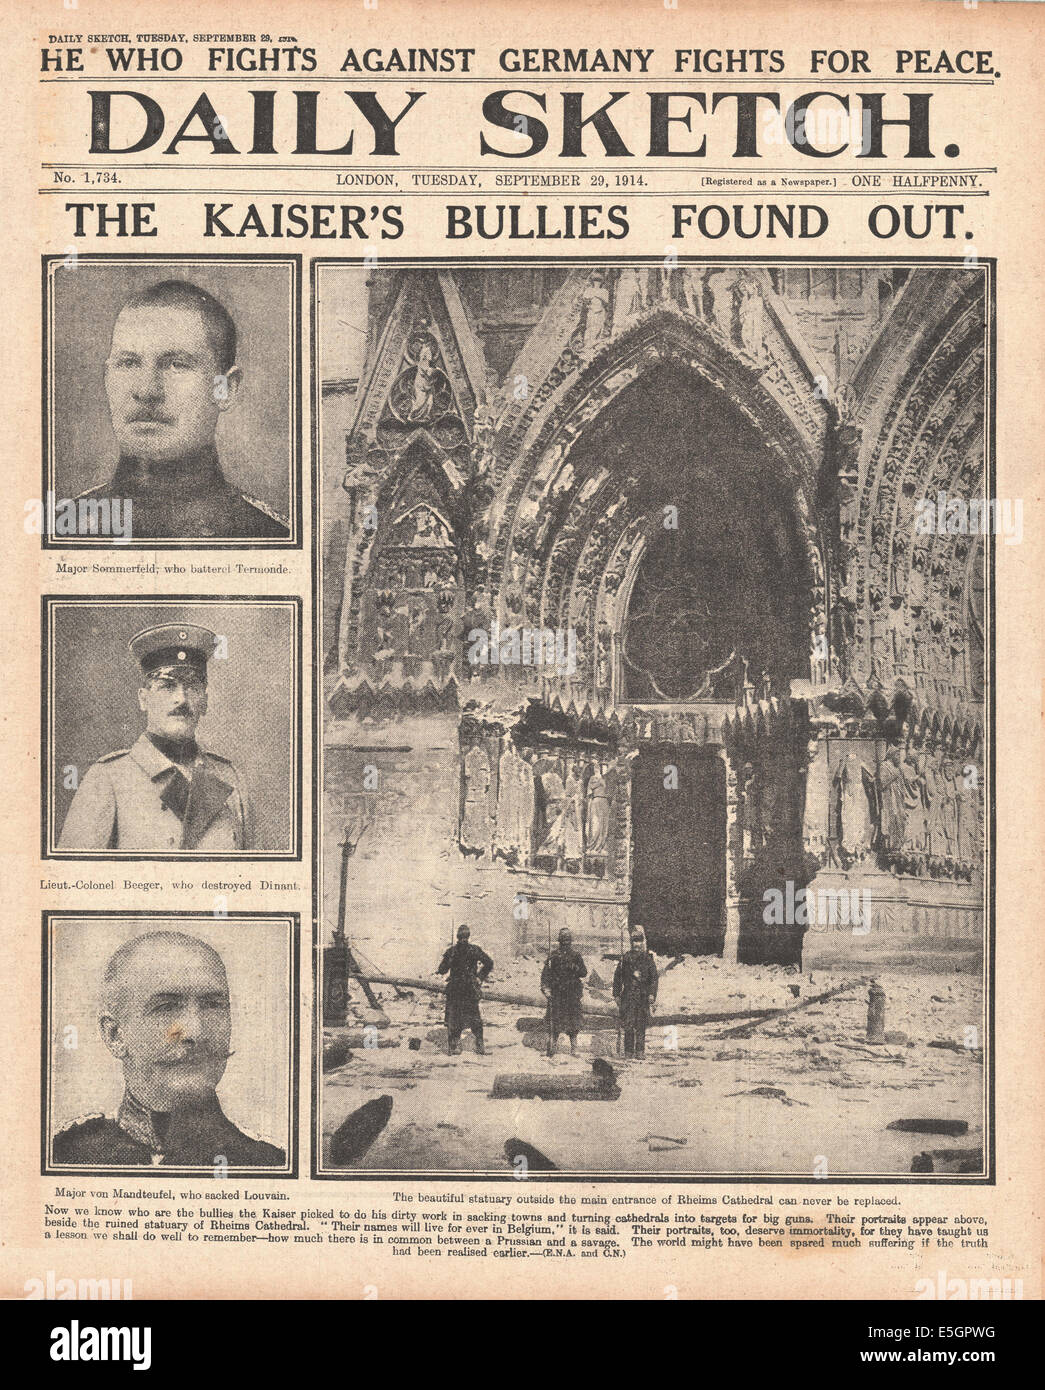 1914 Daily Sketch front page with headline criticising German Army and bomb damage to Rheims cathedral - Stock Image